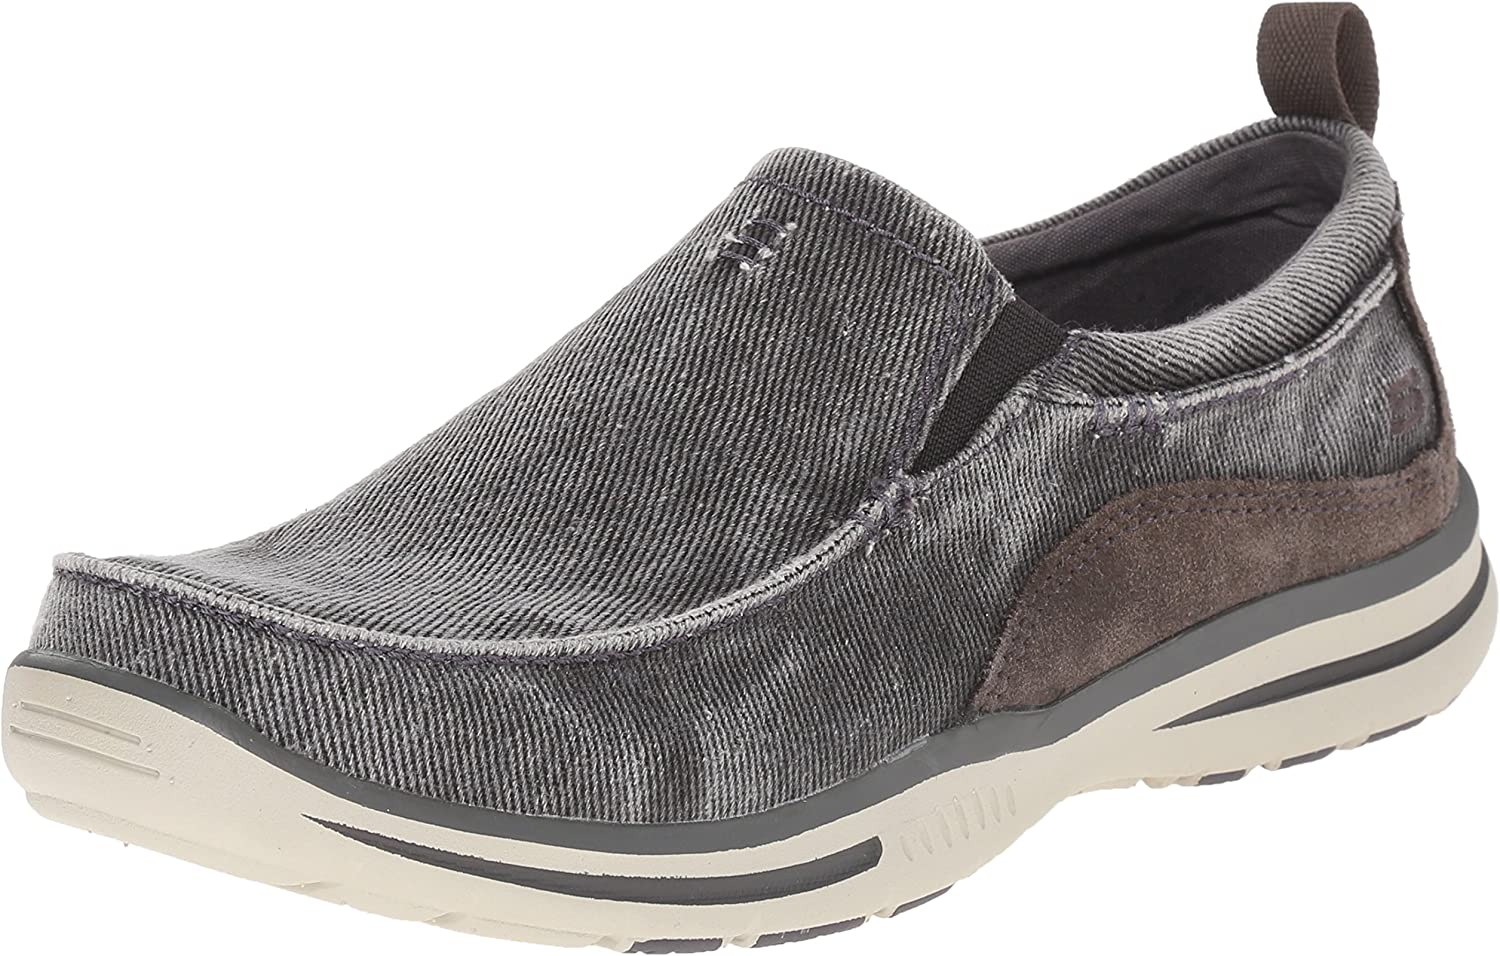 modelo Adolescente Lago taupo  Amazon.com | Skechers Relaxed Fit Men's Elected Drigo Slip-On Loafer Shoes  | Loafers & Slip-Ons